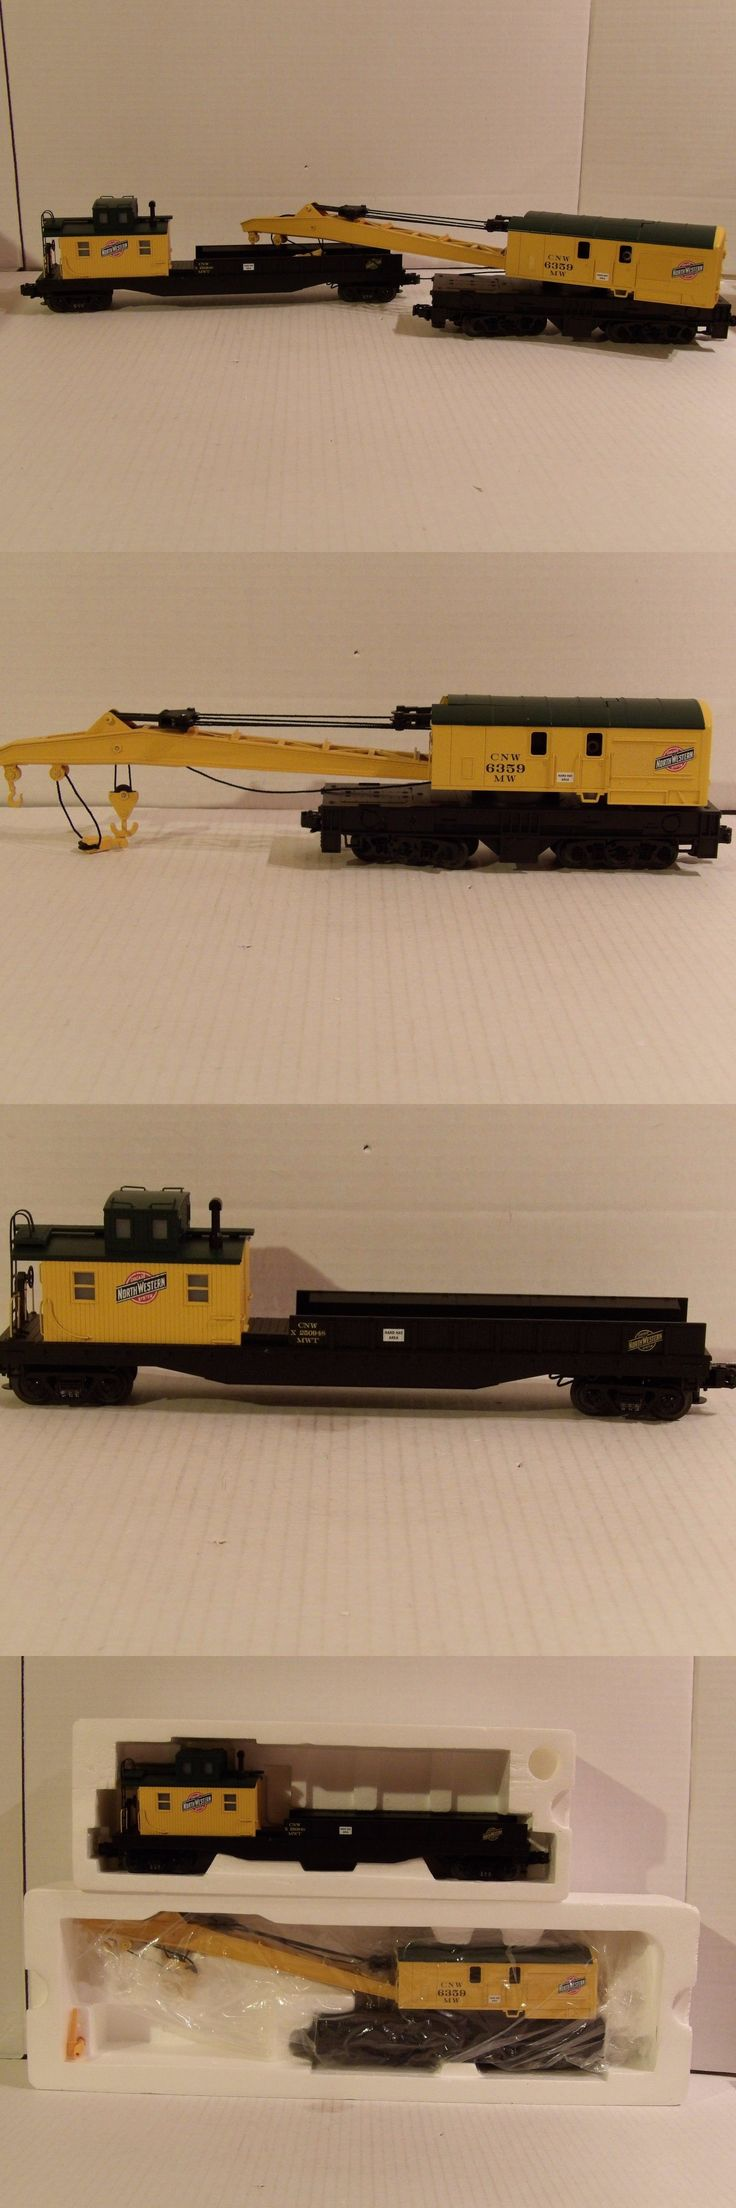 Freight Cars 122596: Mth Premier,Chicago Northwestern, Crane Car Andtender, 20-98238And20-9824, O-Gauge -> BUY IT NOW ONLY: $99.95 on eBay!